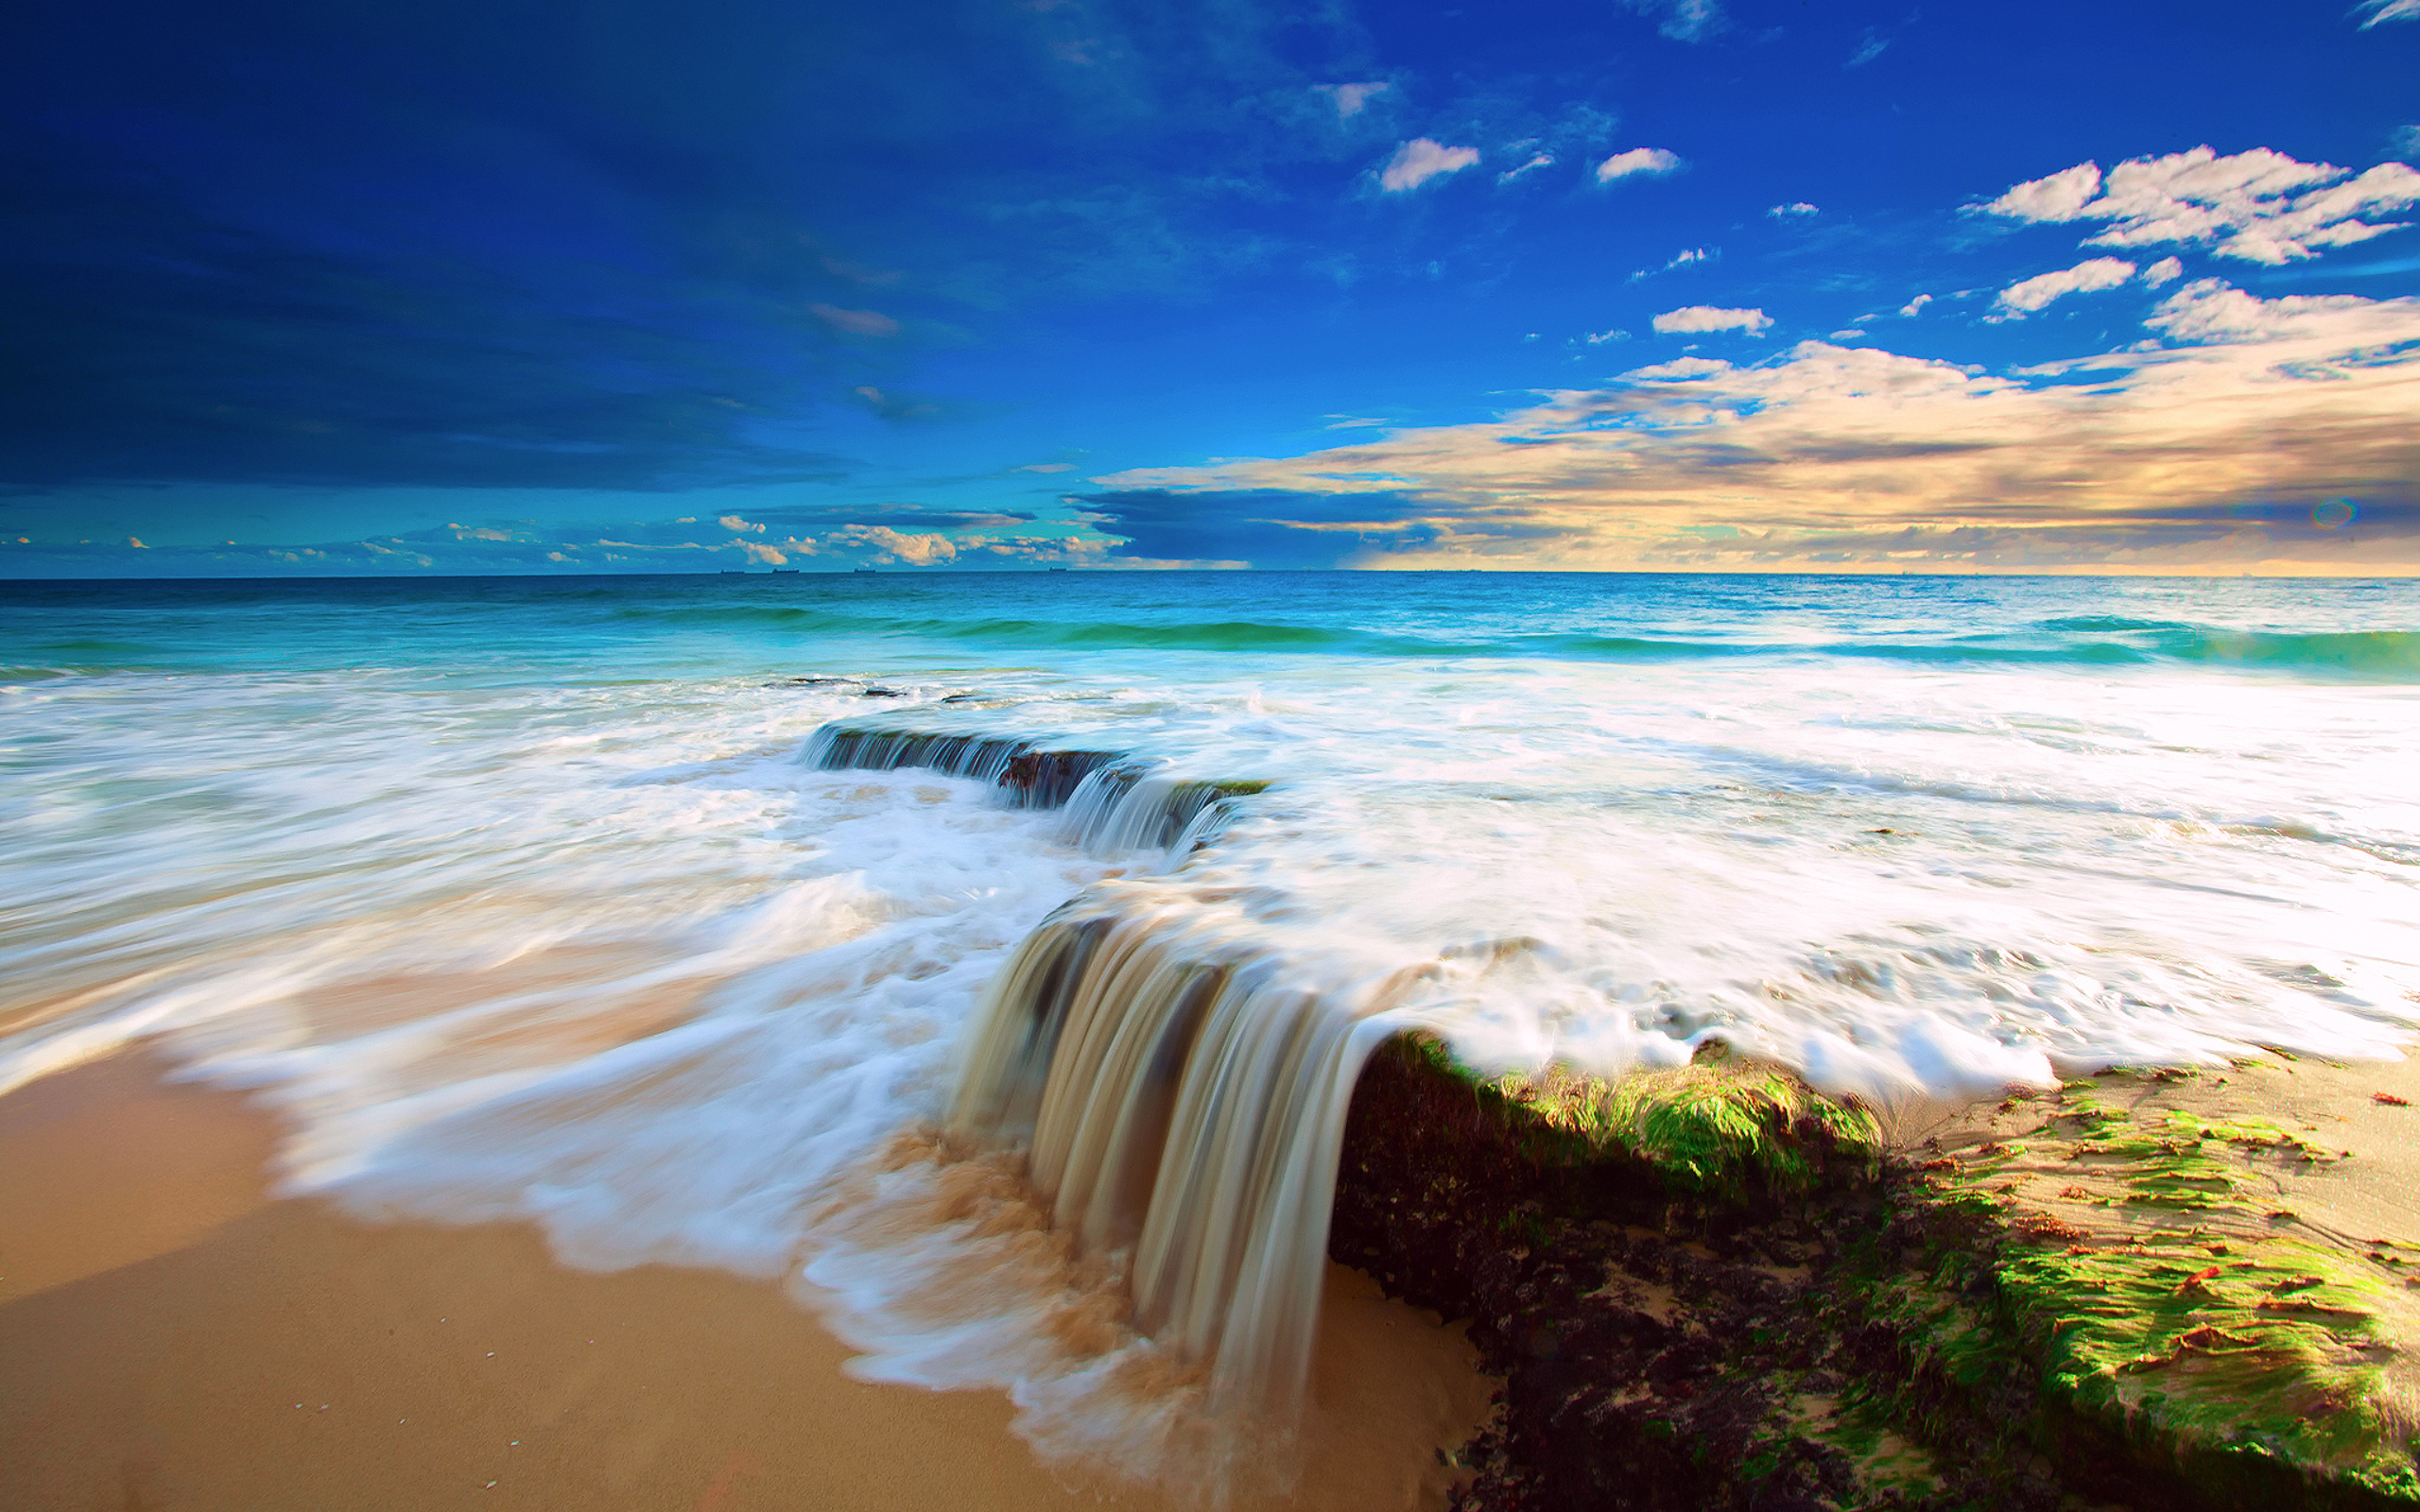 the ocean wallpapers category of hd wallpapers ocean scenes is 2560x1600